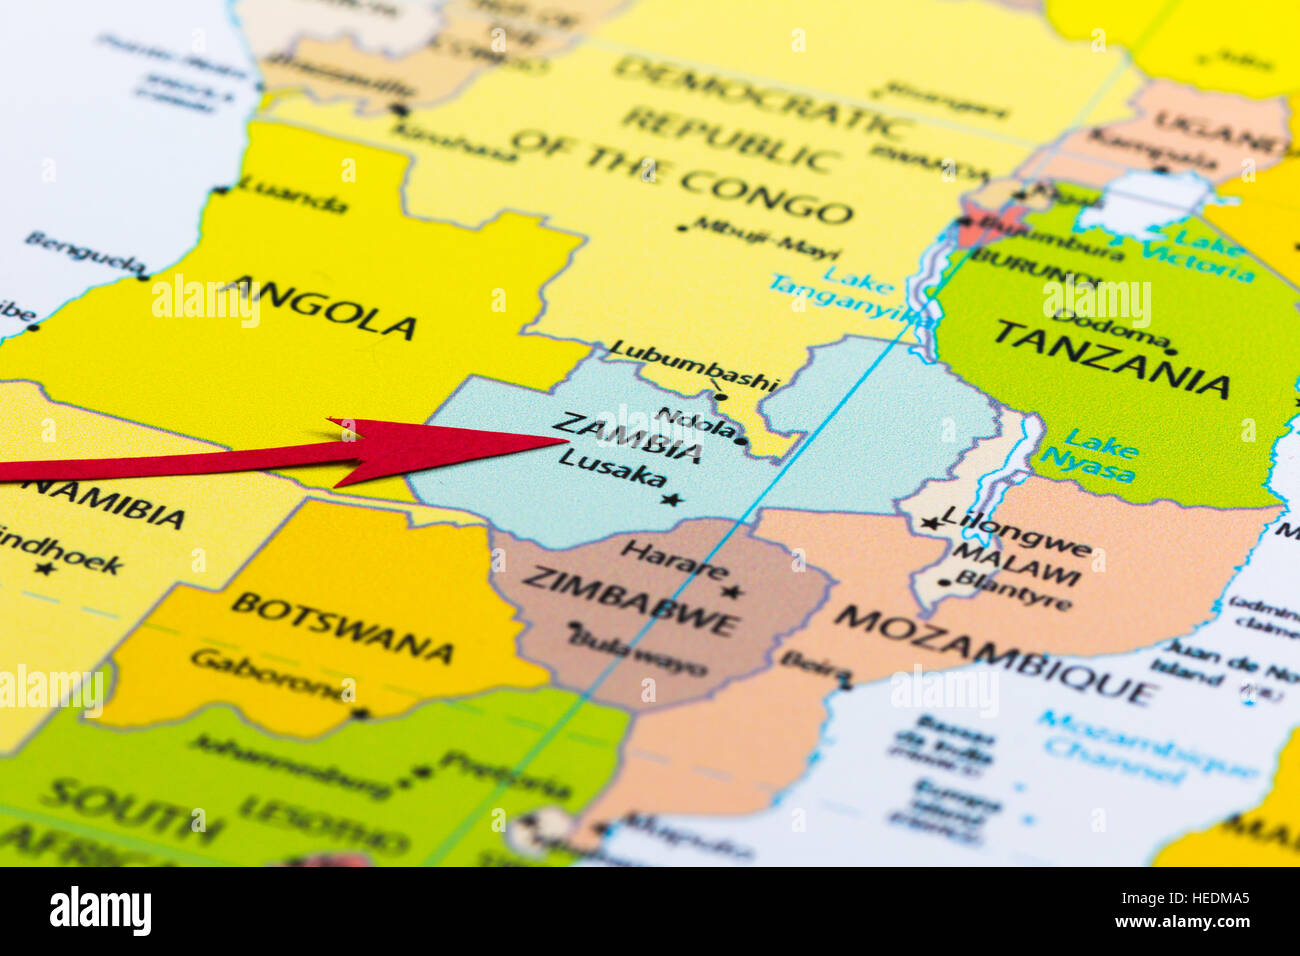 Red Arrow Pointing Zambia On The Map Of Africa Continent Stock - Zambia map